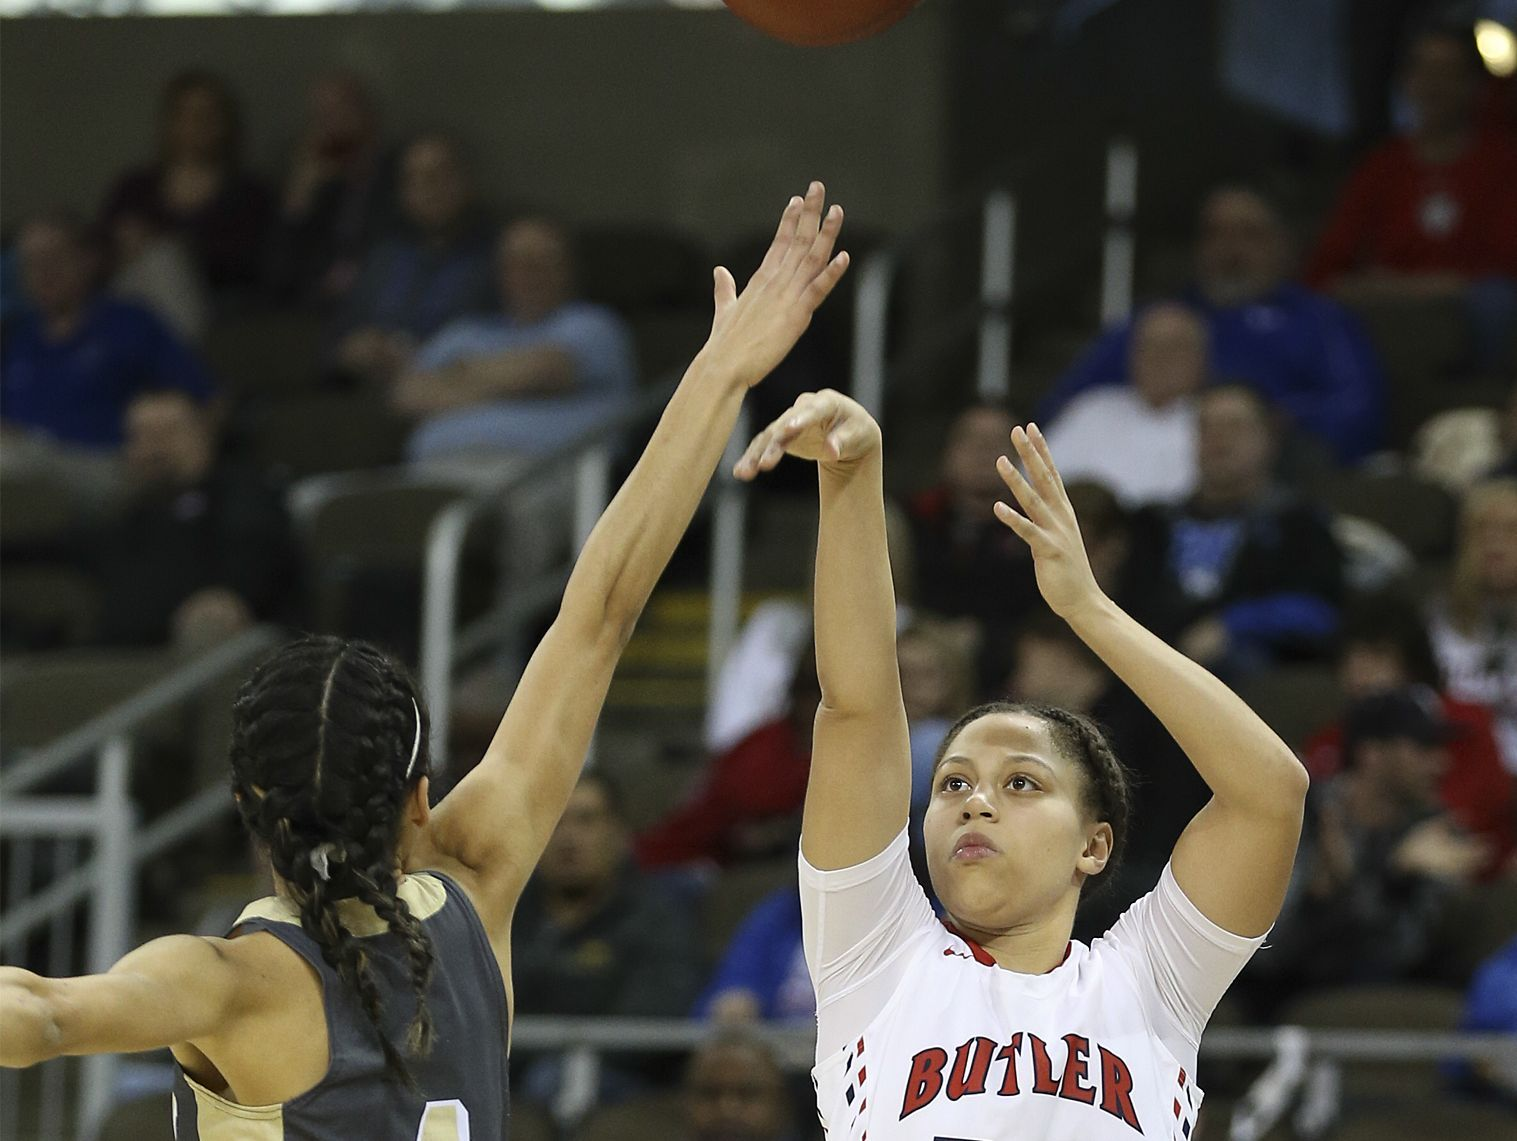 Butler's Teri Goodlett shoots late in the second half. March 10, 2017